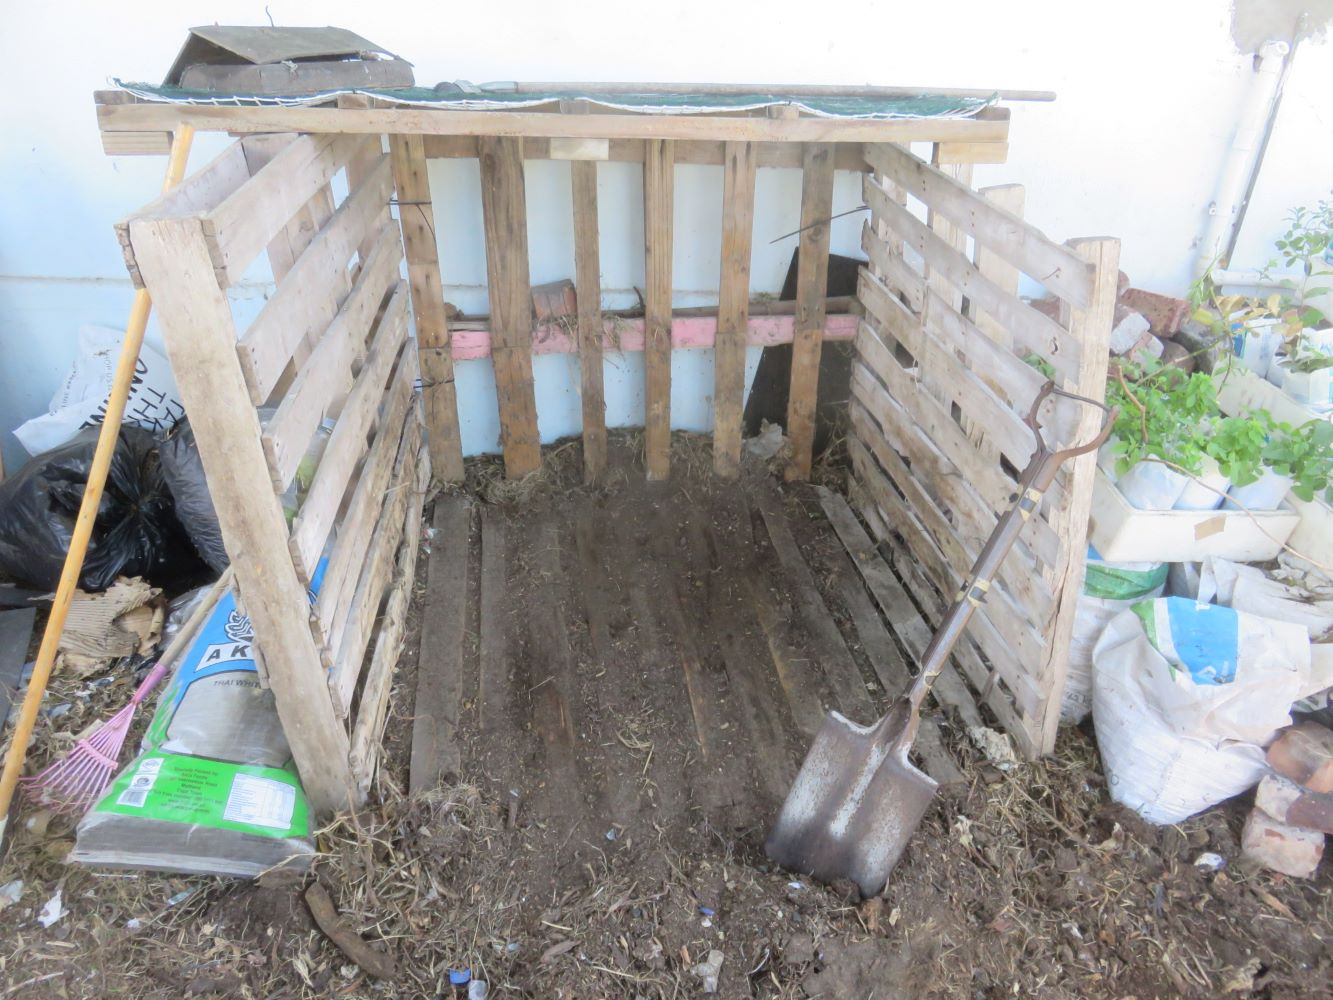 Our old abandoned cubic composter